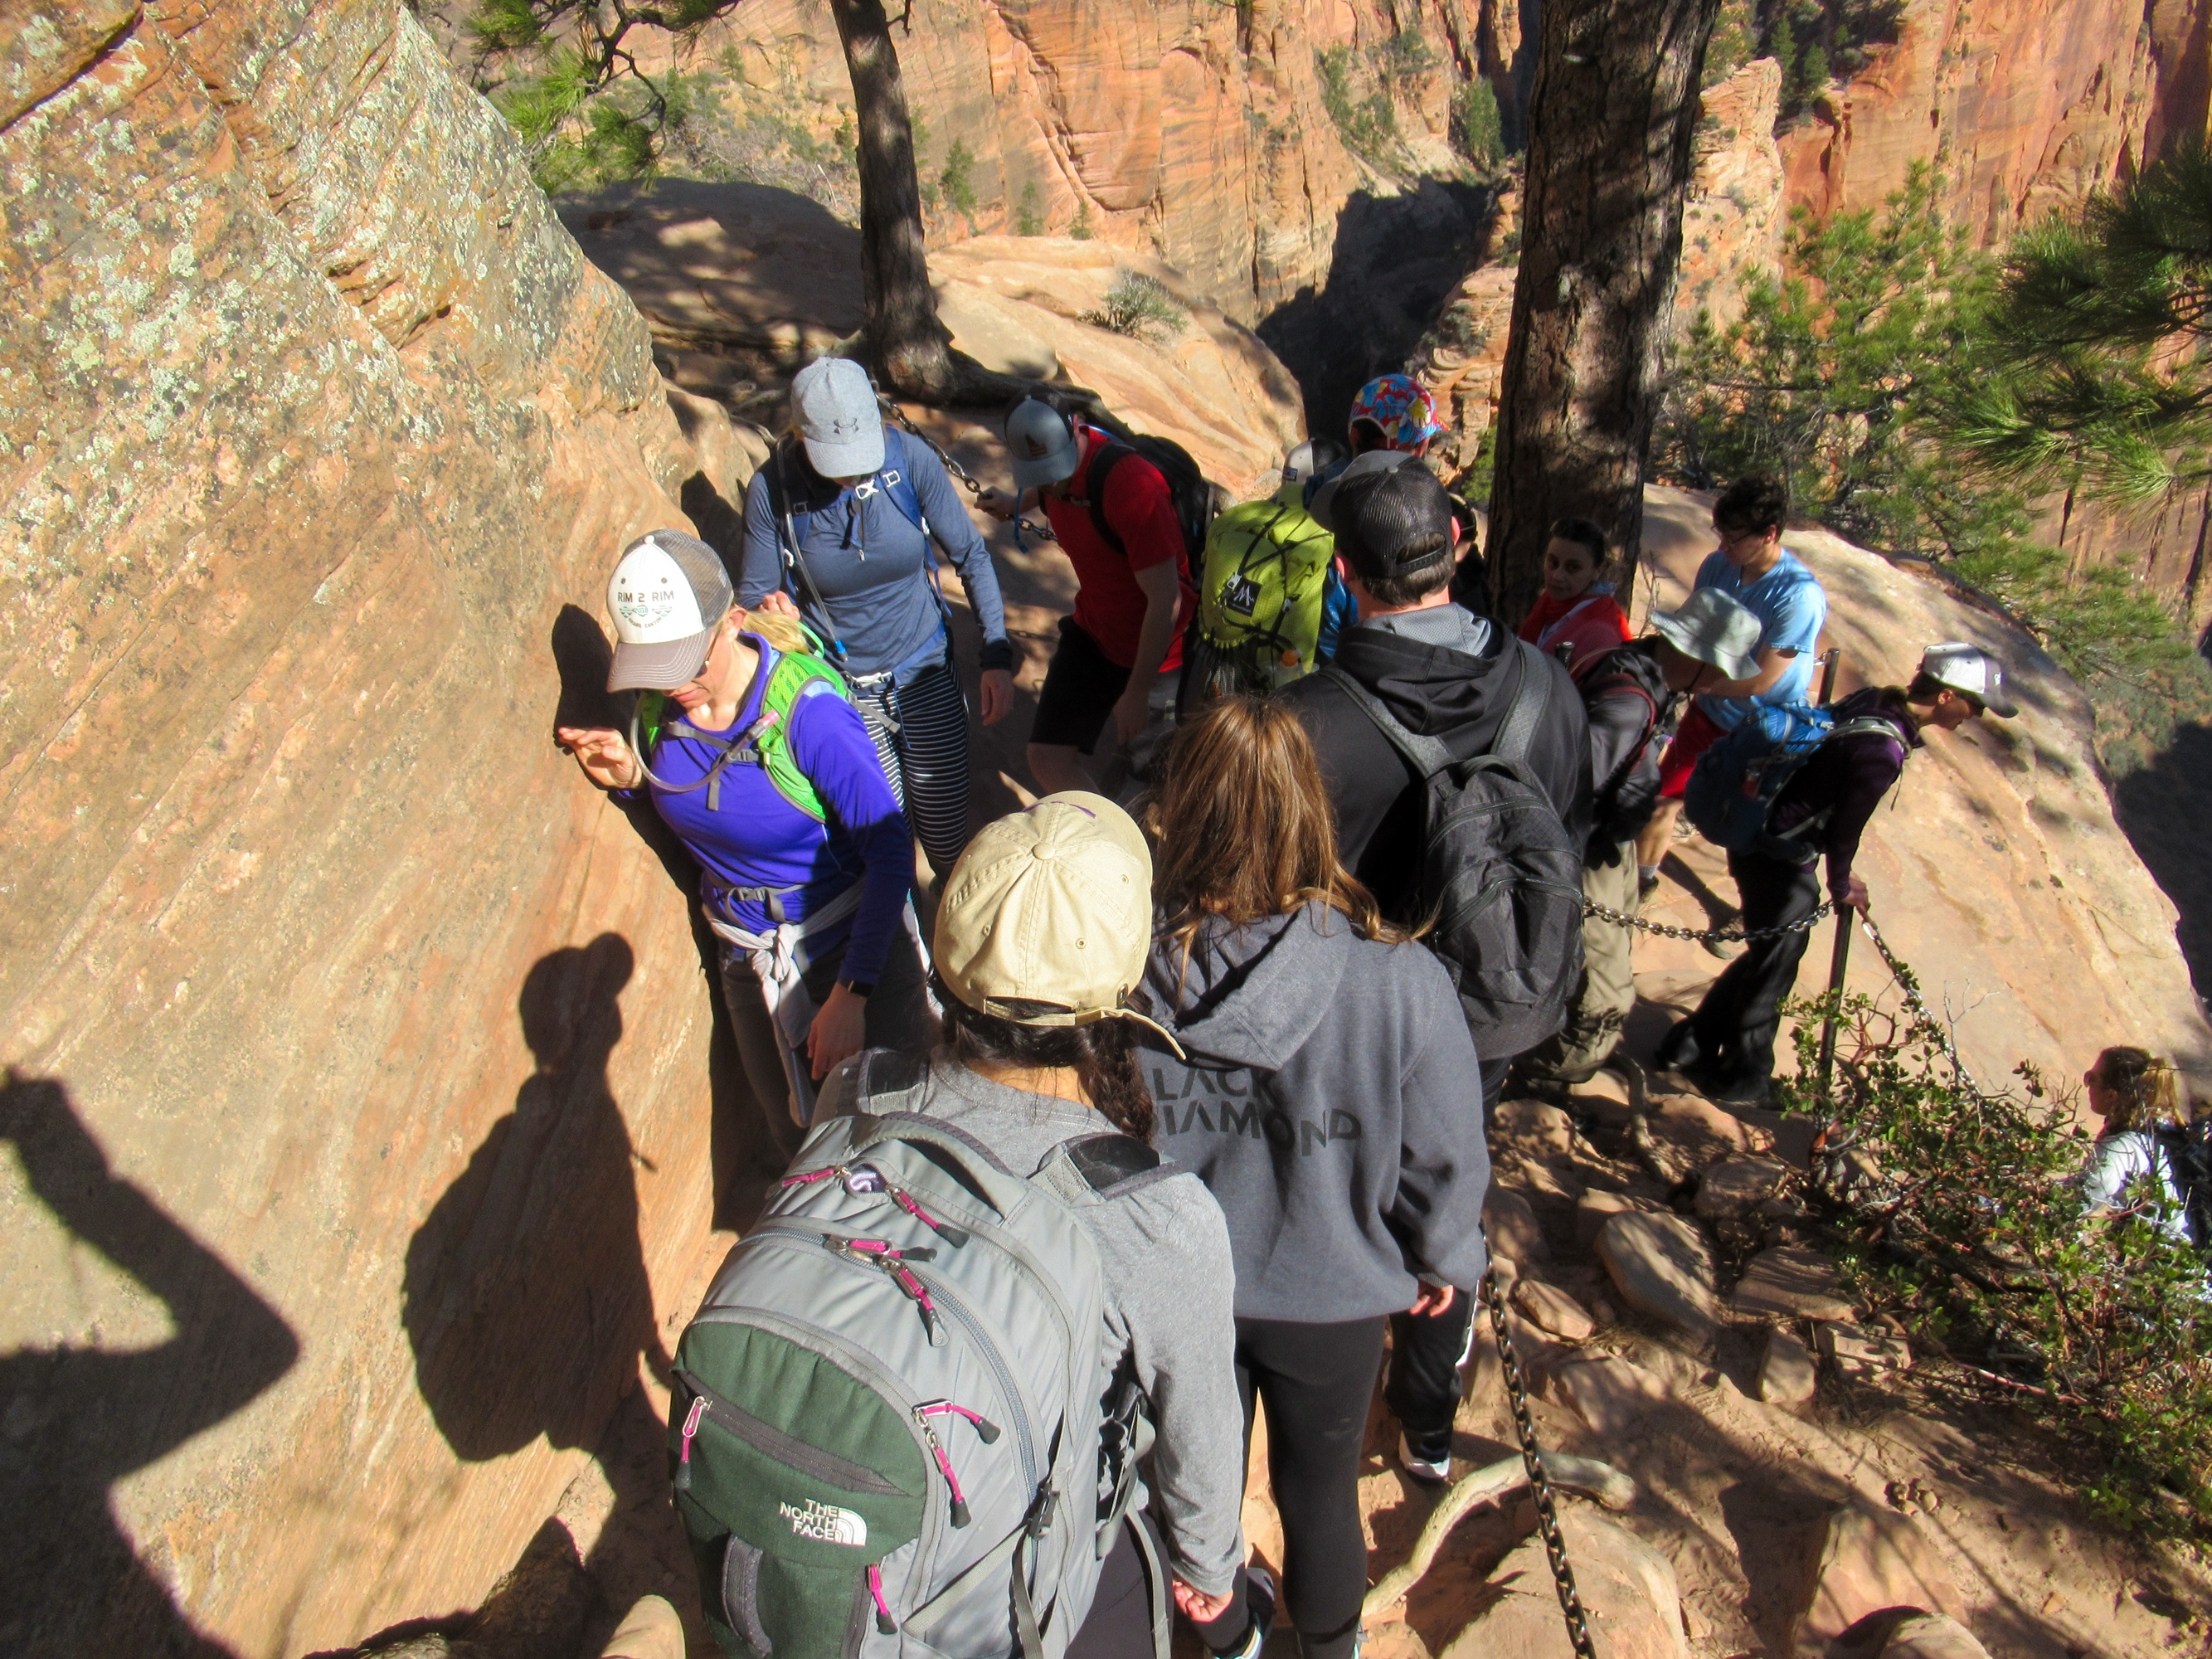 Crowded trail to Angels Landing in Zion.